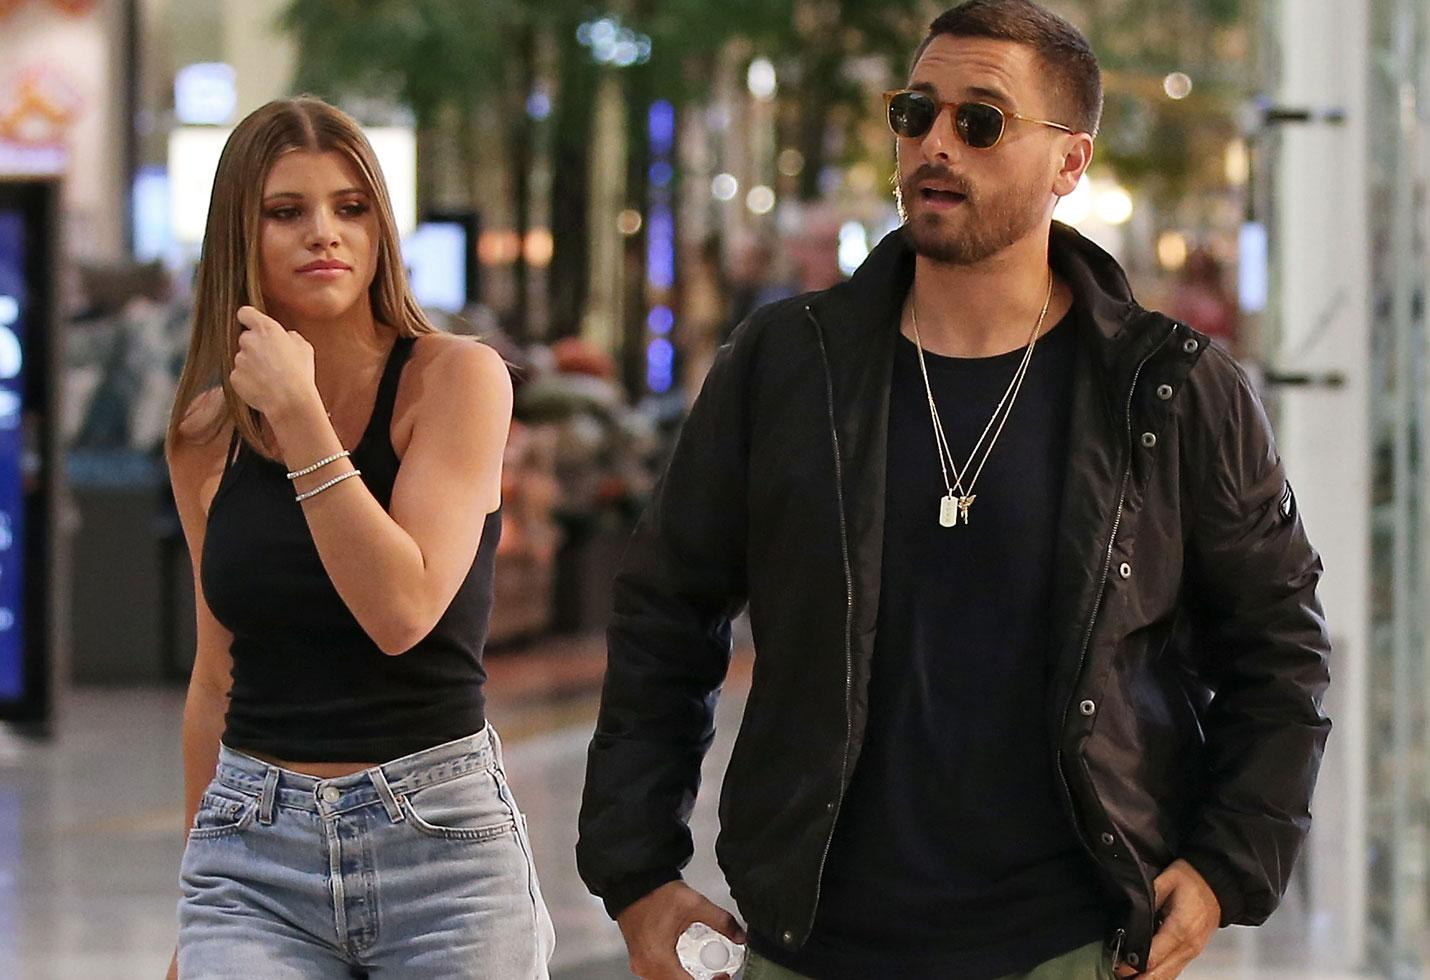 Sofia Richie And Scott Disick Spotted During Romantic Date While Kourtney Kardashian Hangs Out With Mystery Man